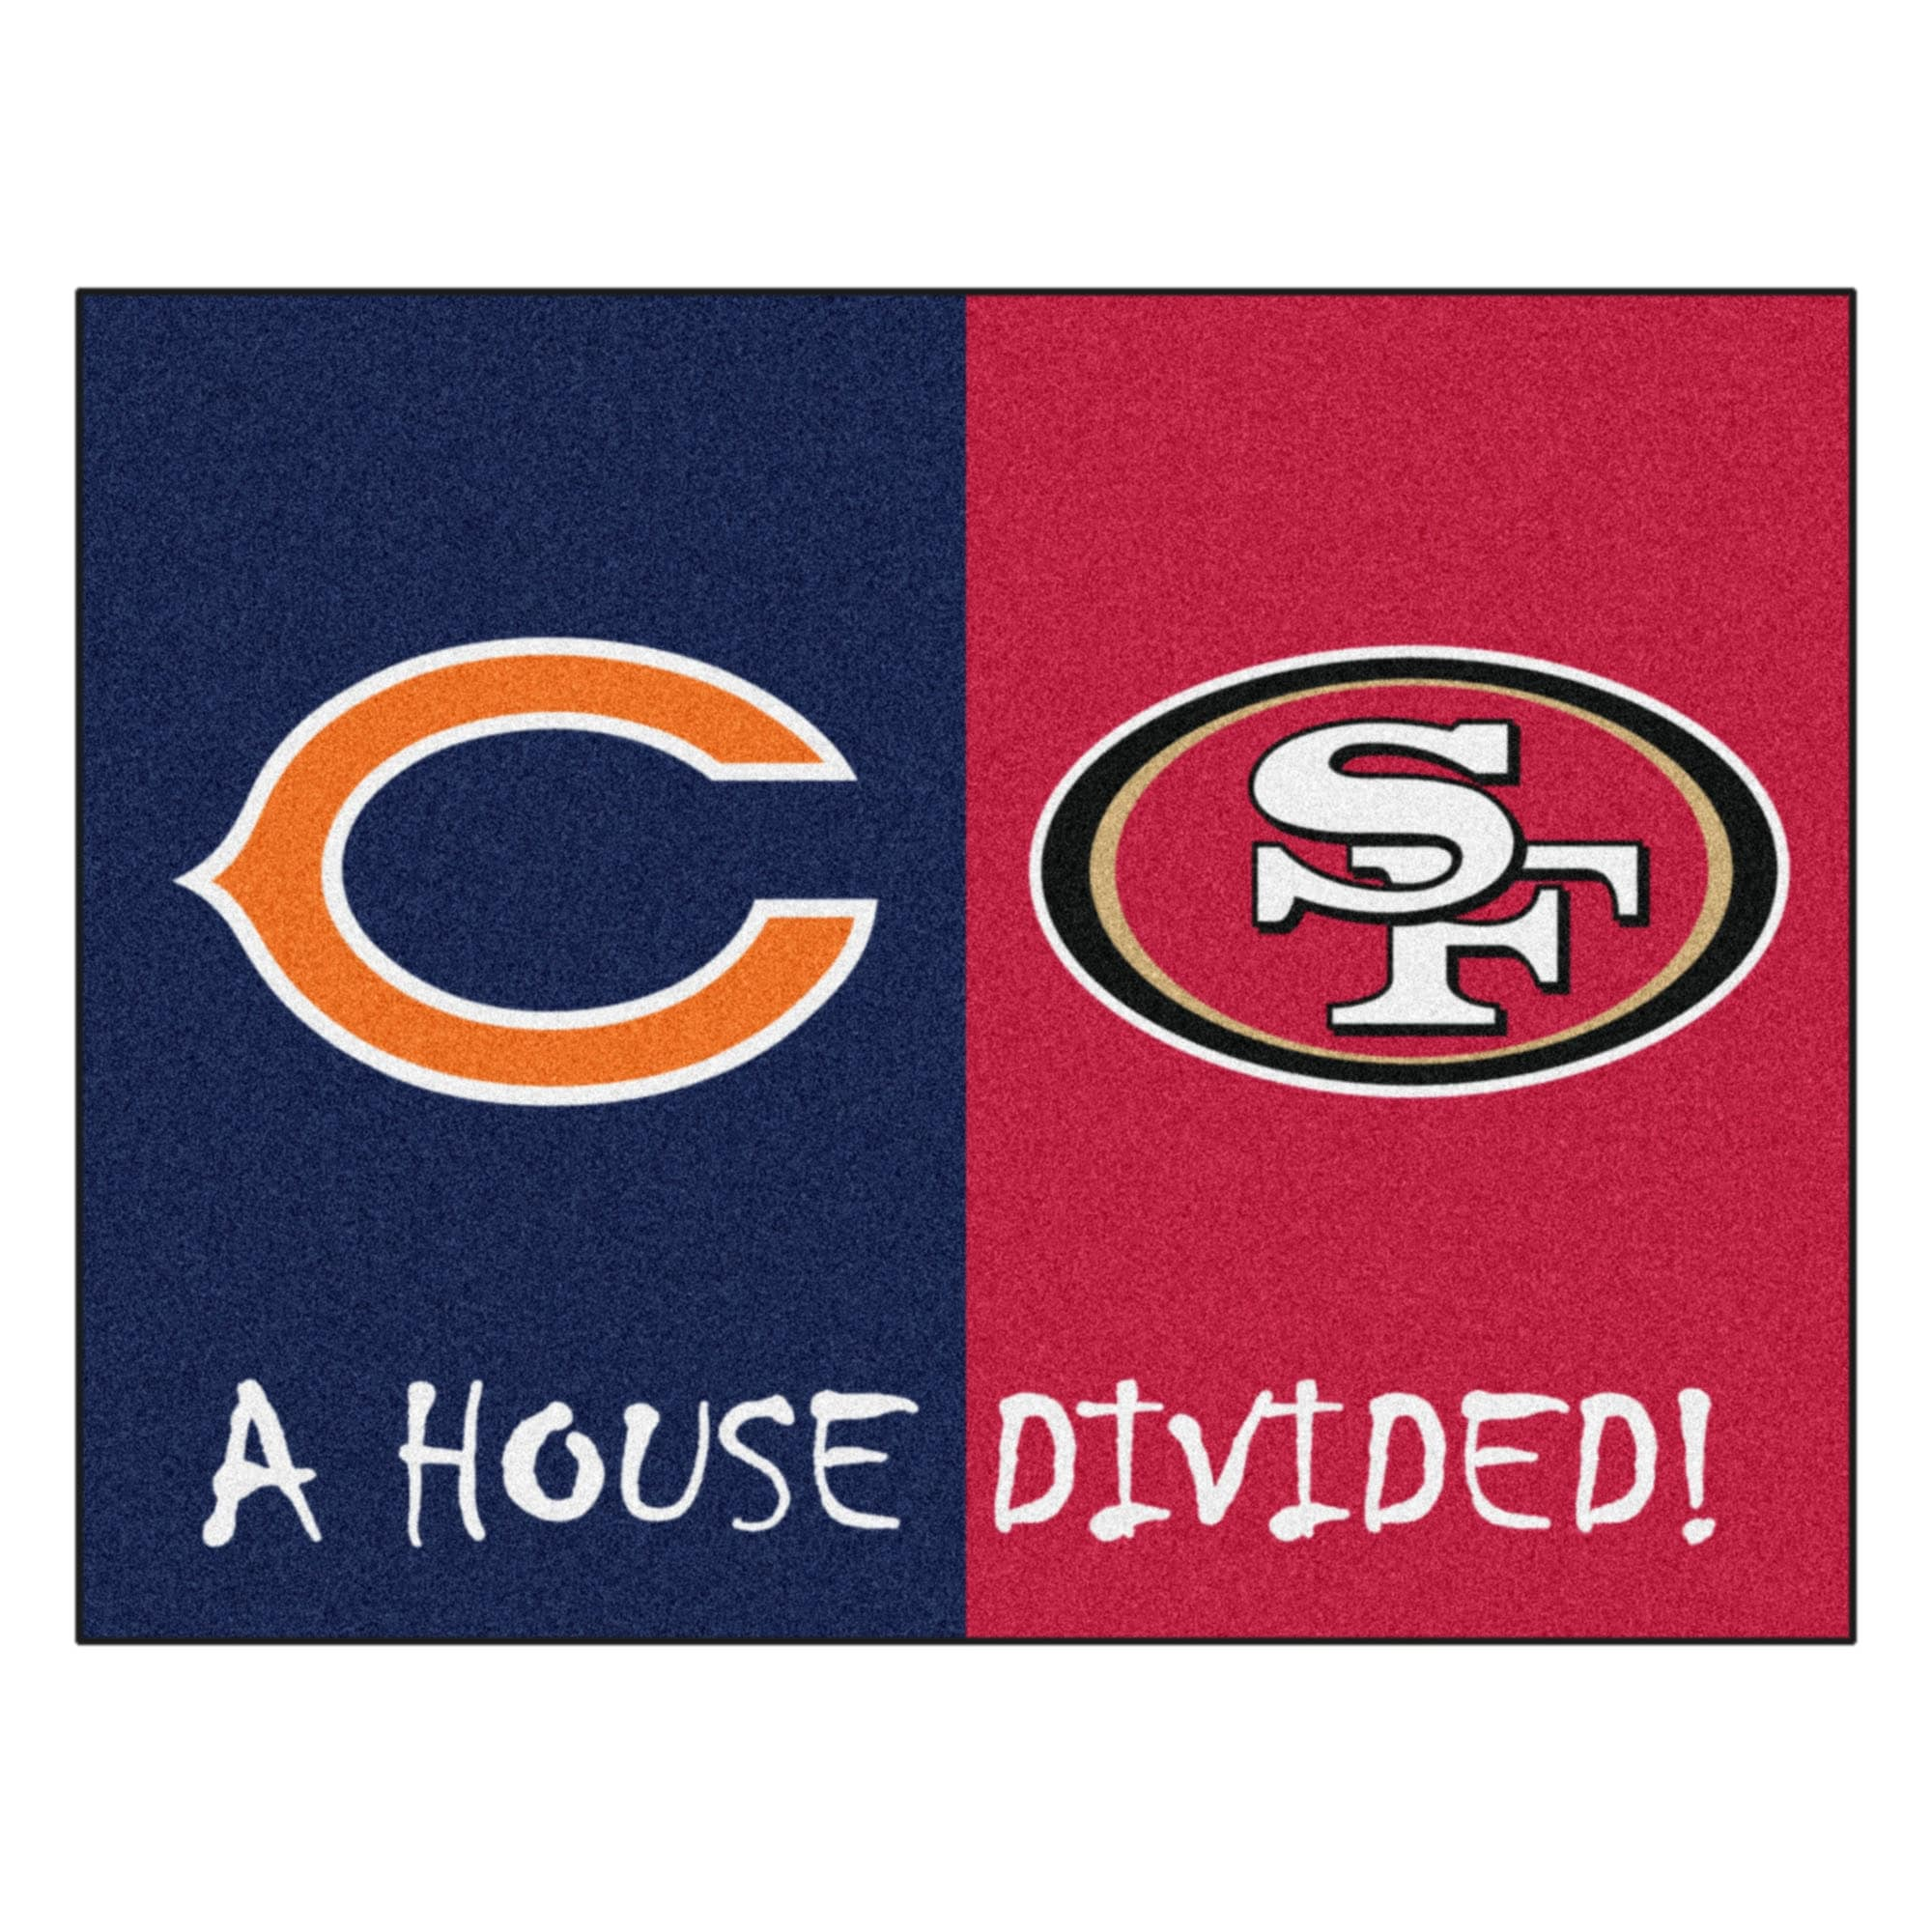 hot sale online 4860f 23377 Shop NCAA House Divided - Bears   49ers House Divided Non-Skid Mat  Rectangular Area Rug - Free Shipping Today - Overstock - 22622080